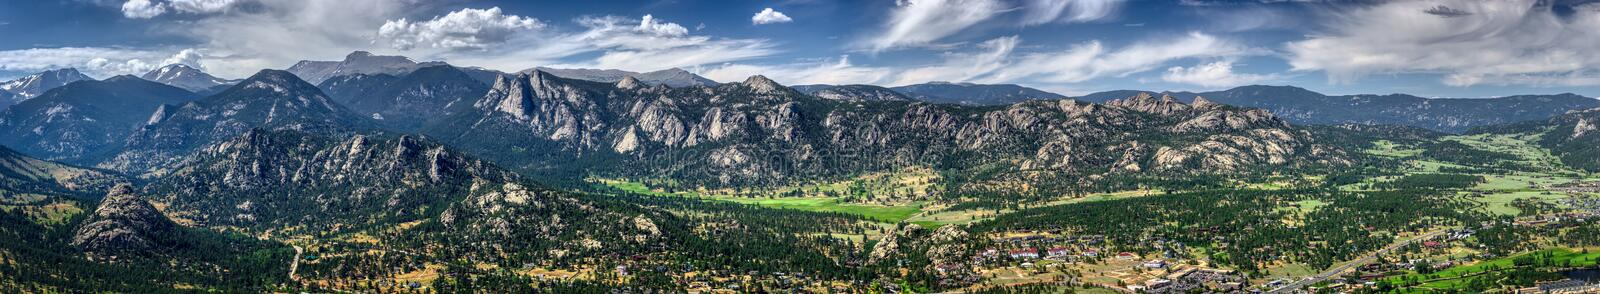 Estes Park Aerial Panorama. Scenic valley and snow-covered peaks under a blue sky with clouds in Estes Park, Colorado near the Rocky Mountain National Park stock photos